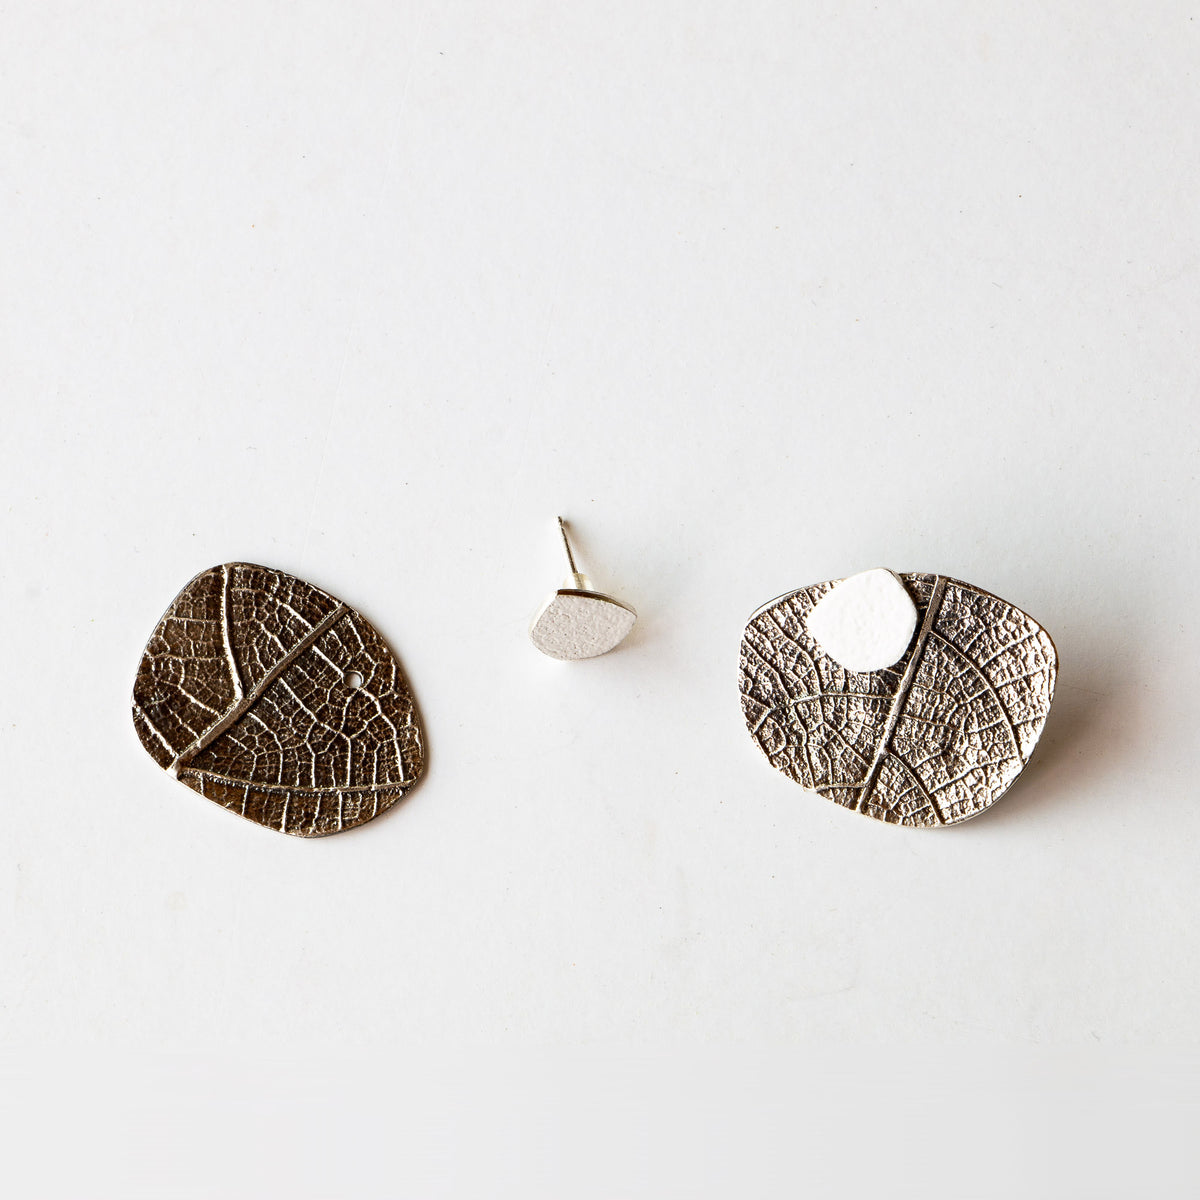 Leaf - Silver & Color Ear Jacket Earrings - Sold by Chic & Basta